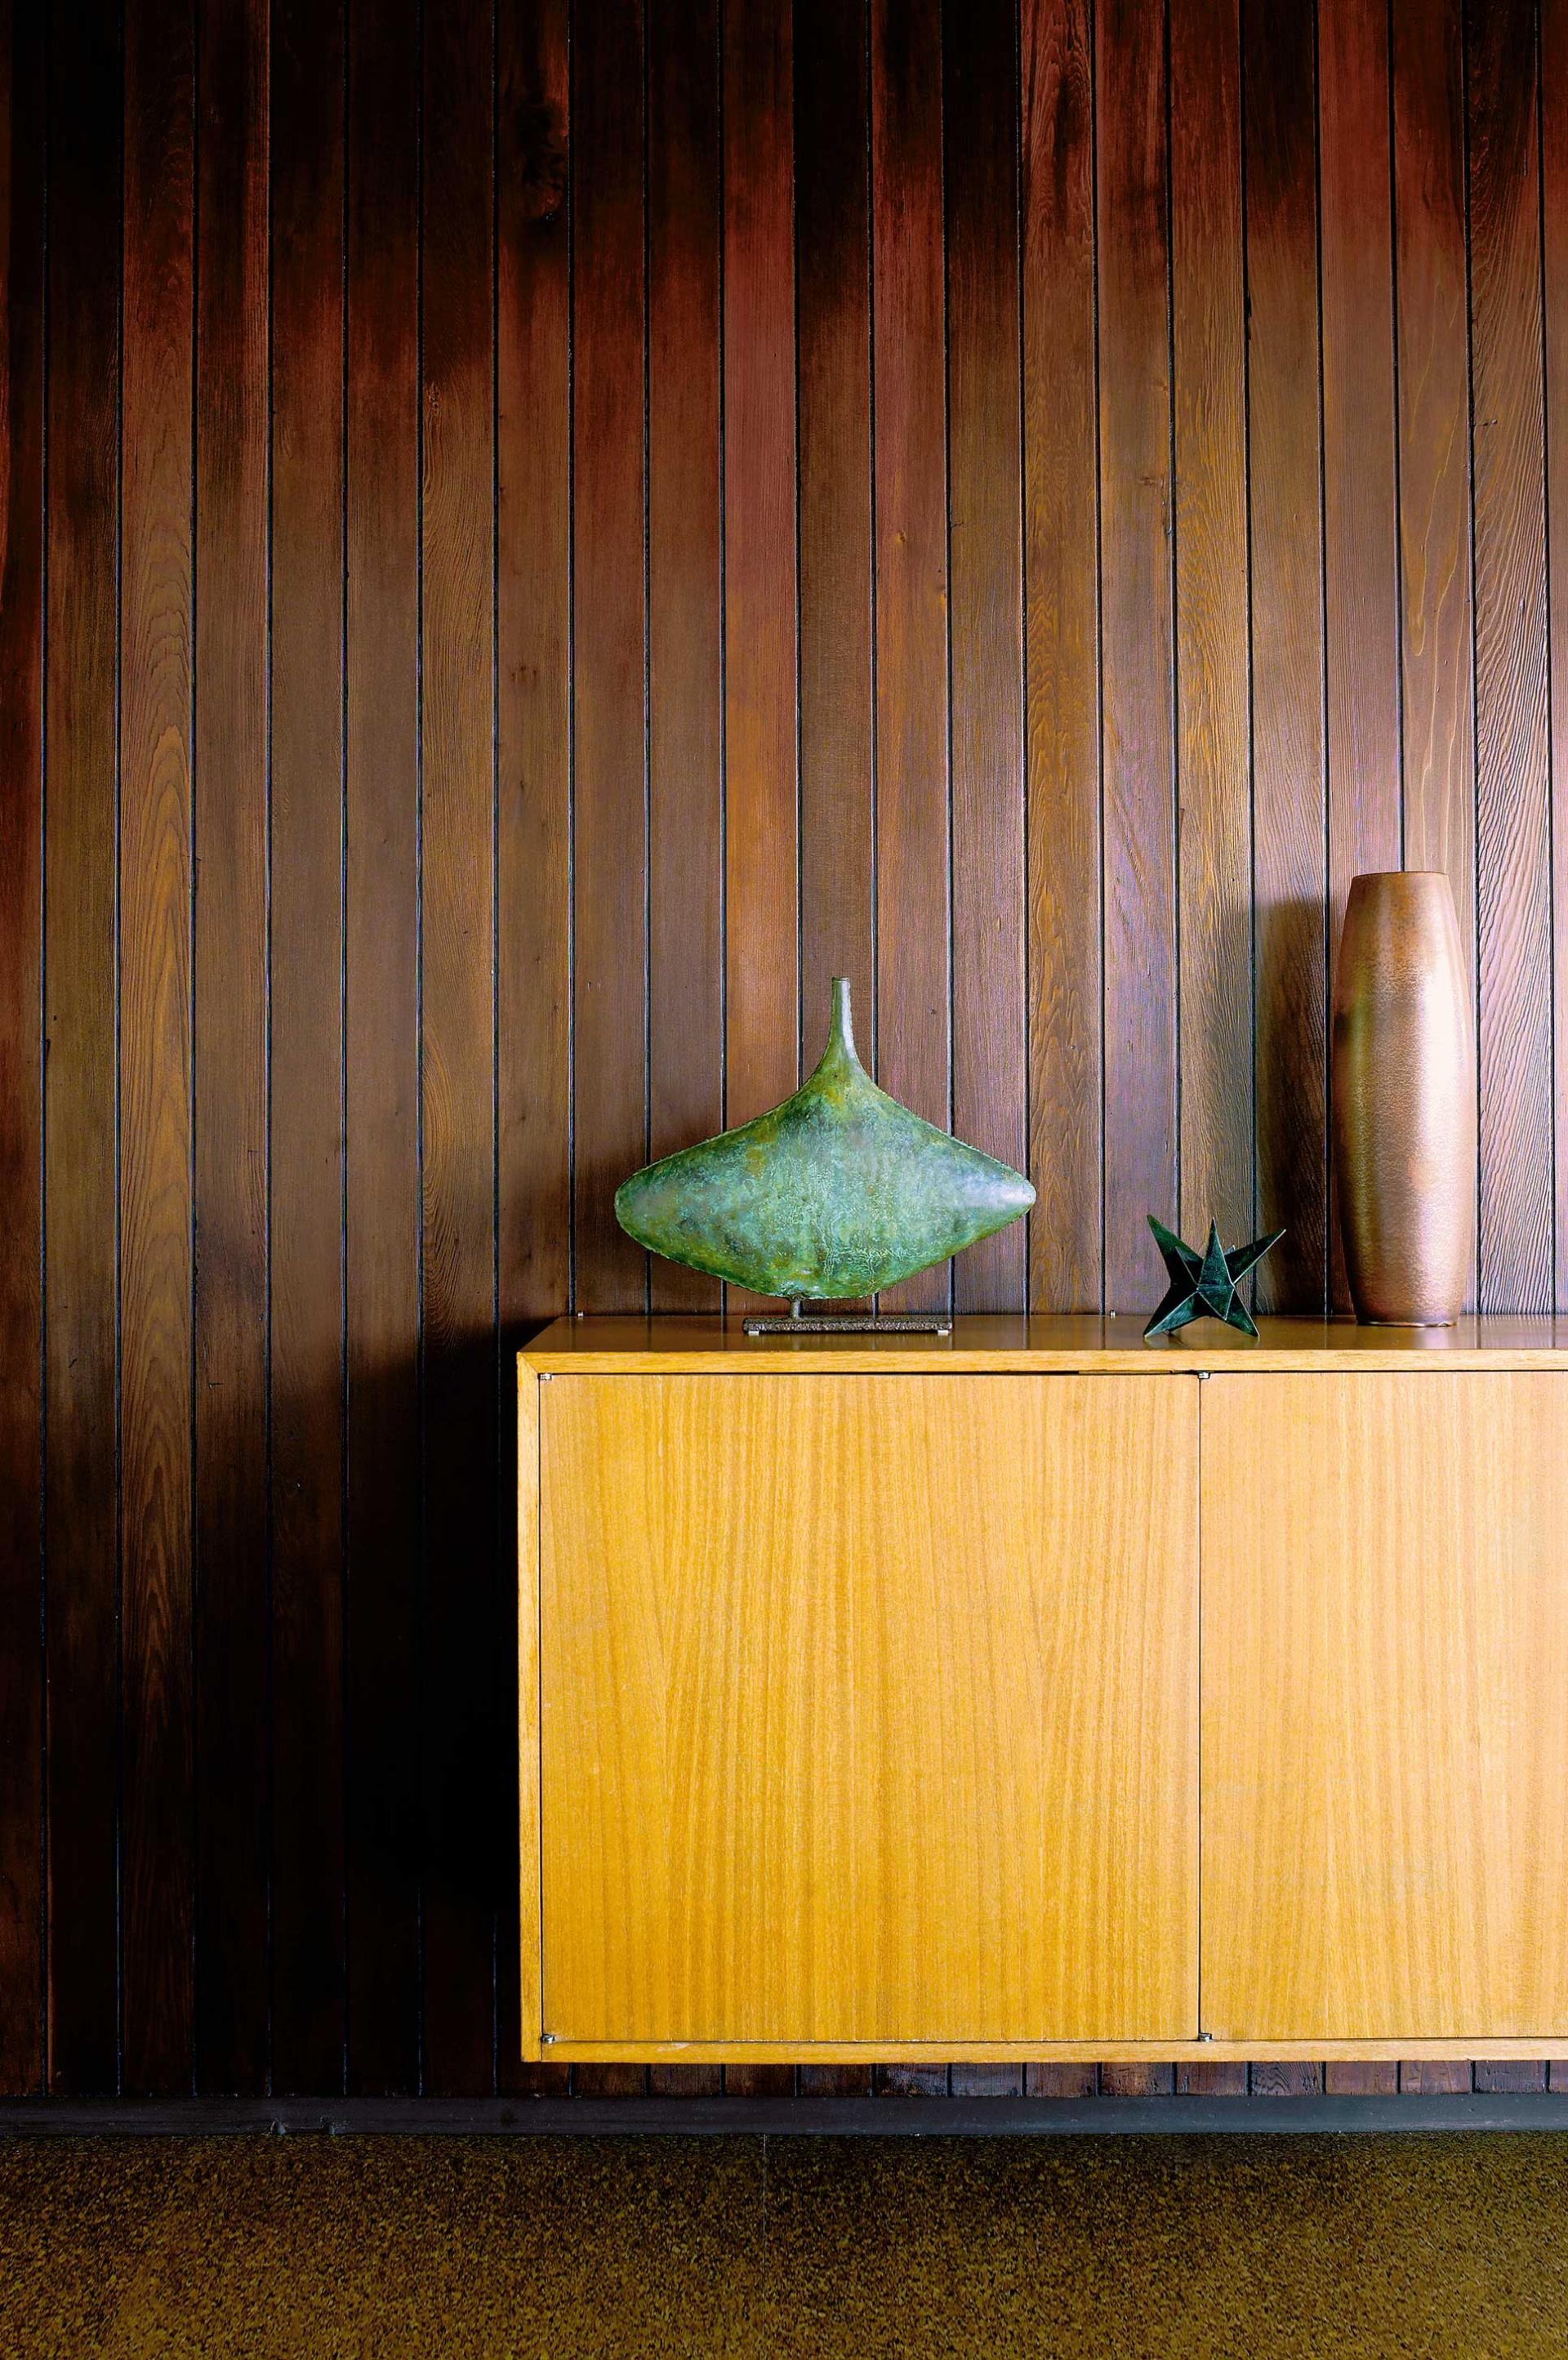 timber-panelling-malibu-home-summer-powers-jan12-20150706114537~q75,dx1920y-u1r1g0,c--.jpg